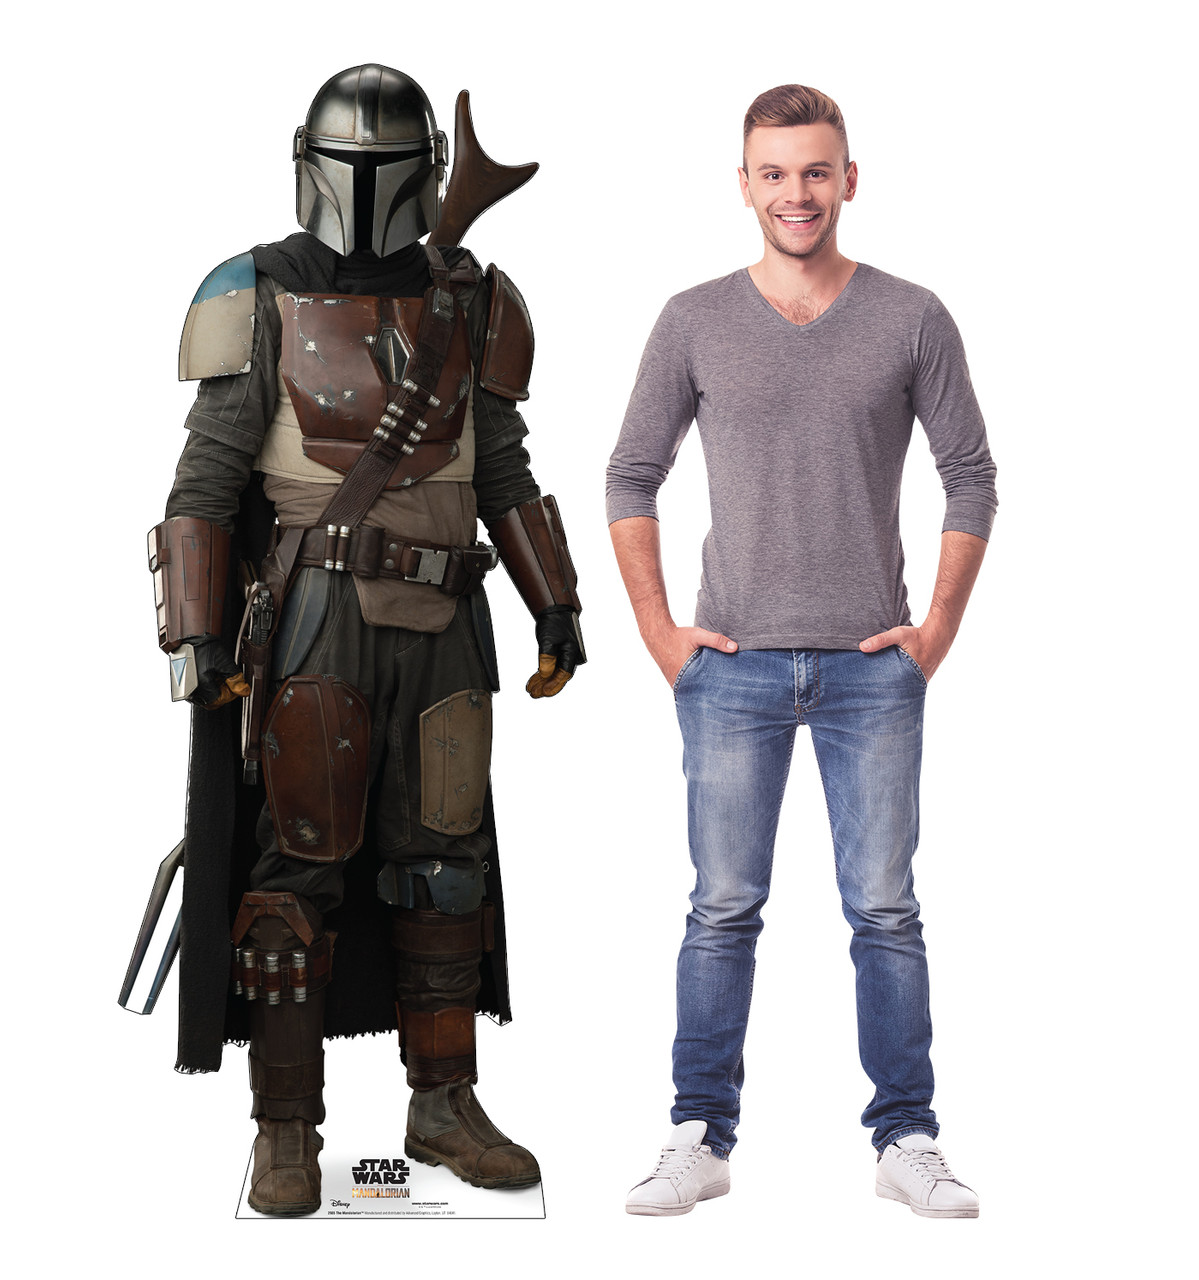 Life-size cardboard standee of The Mandalorian with model.